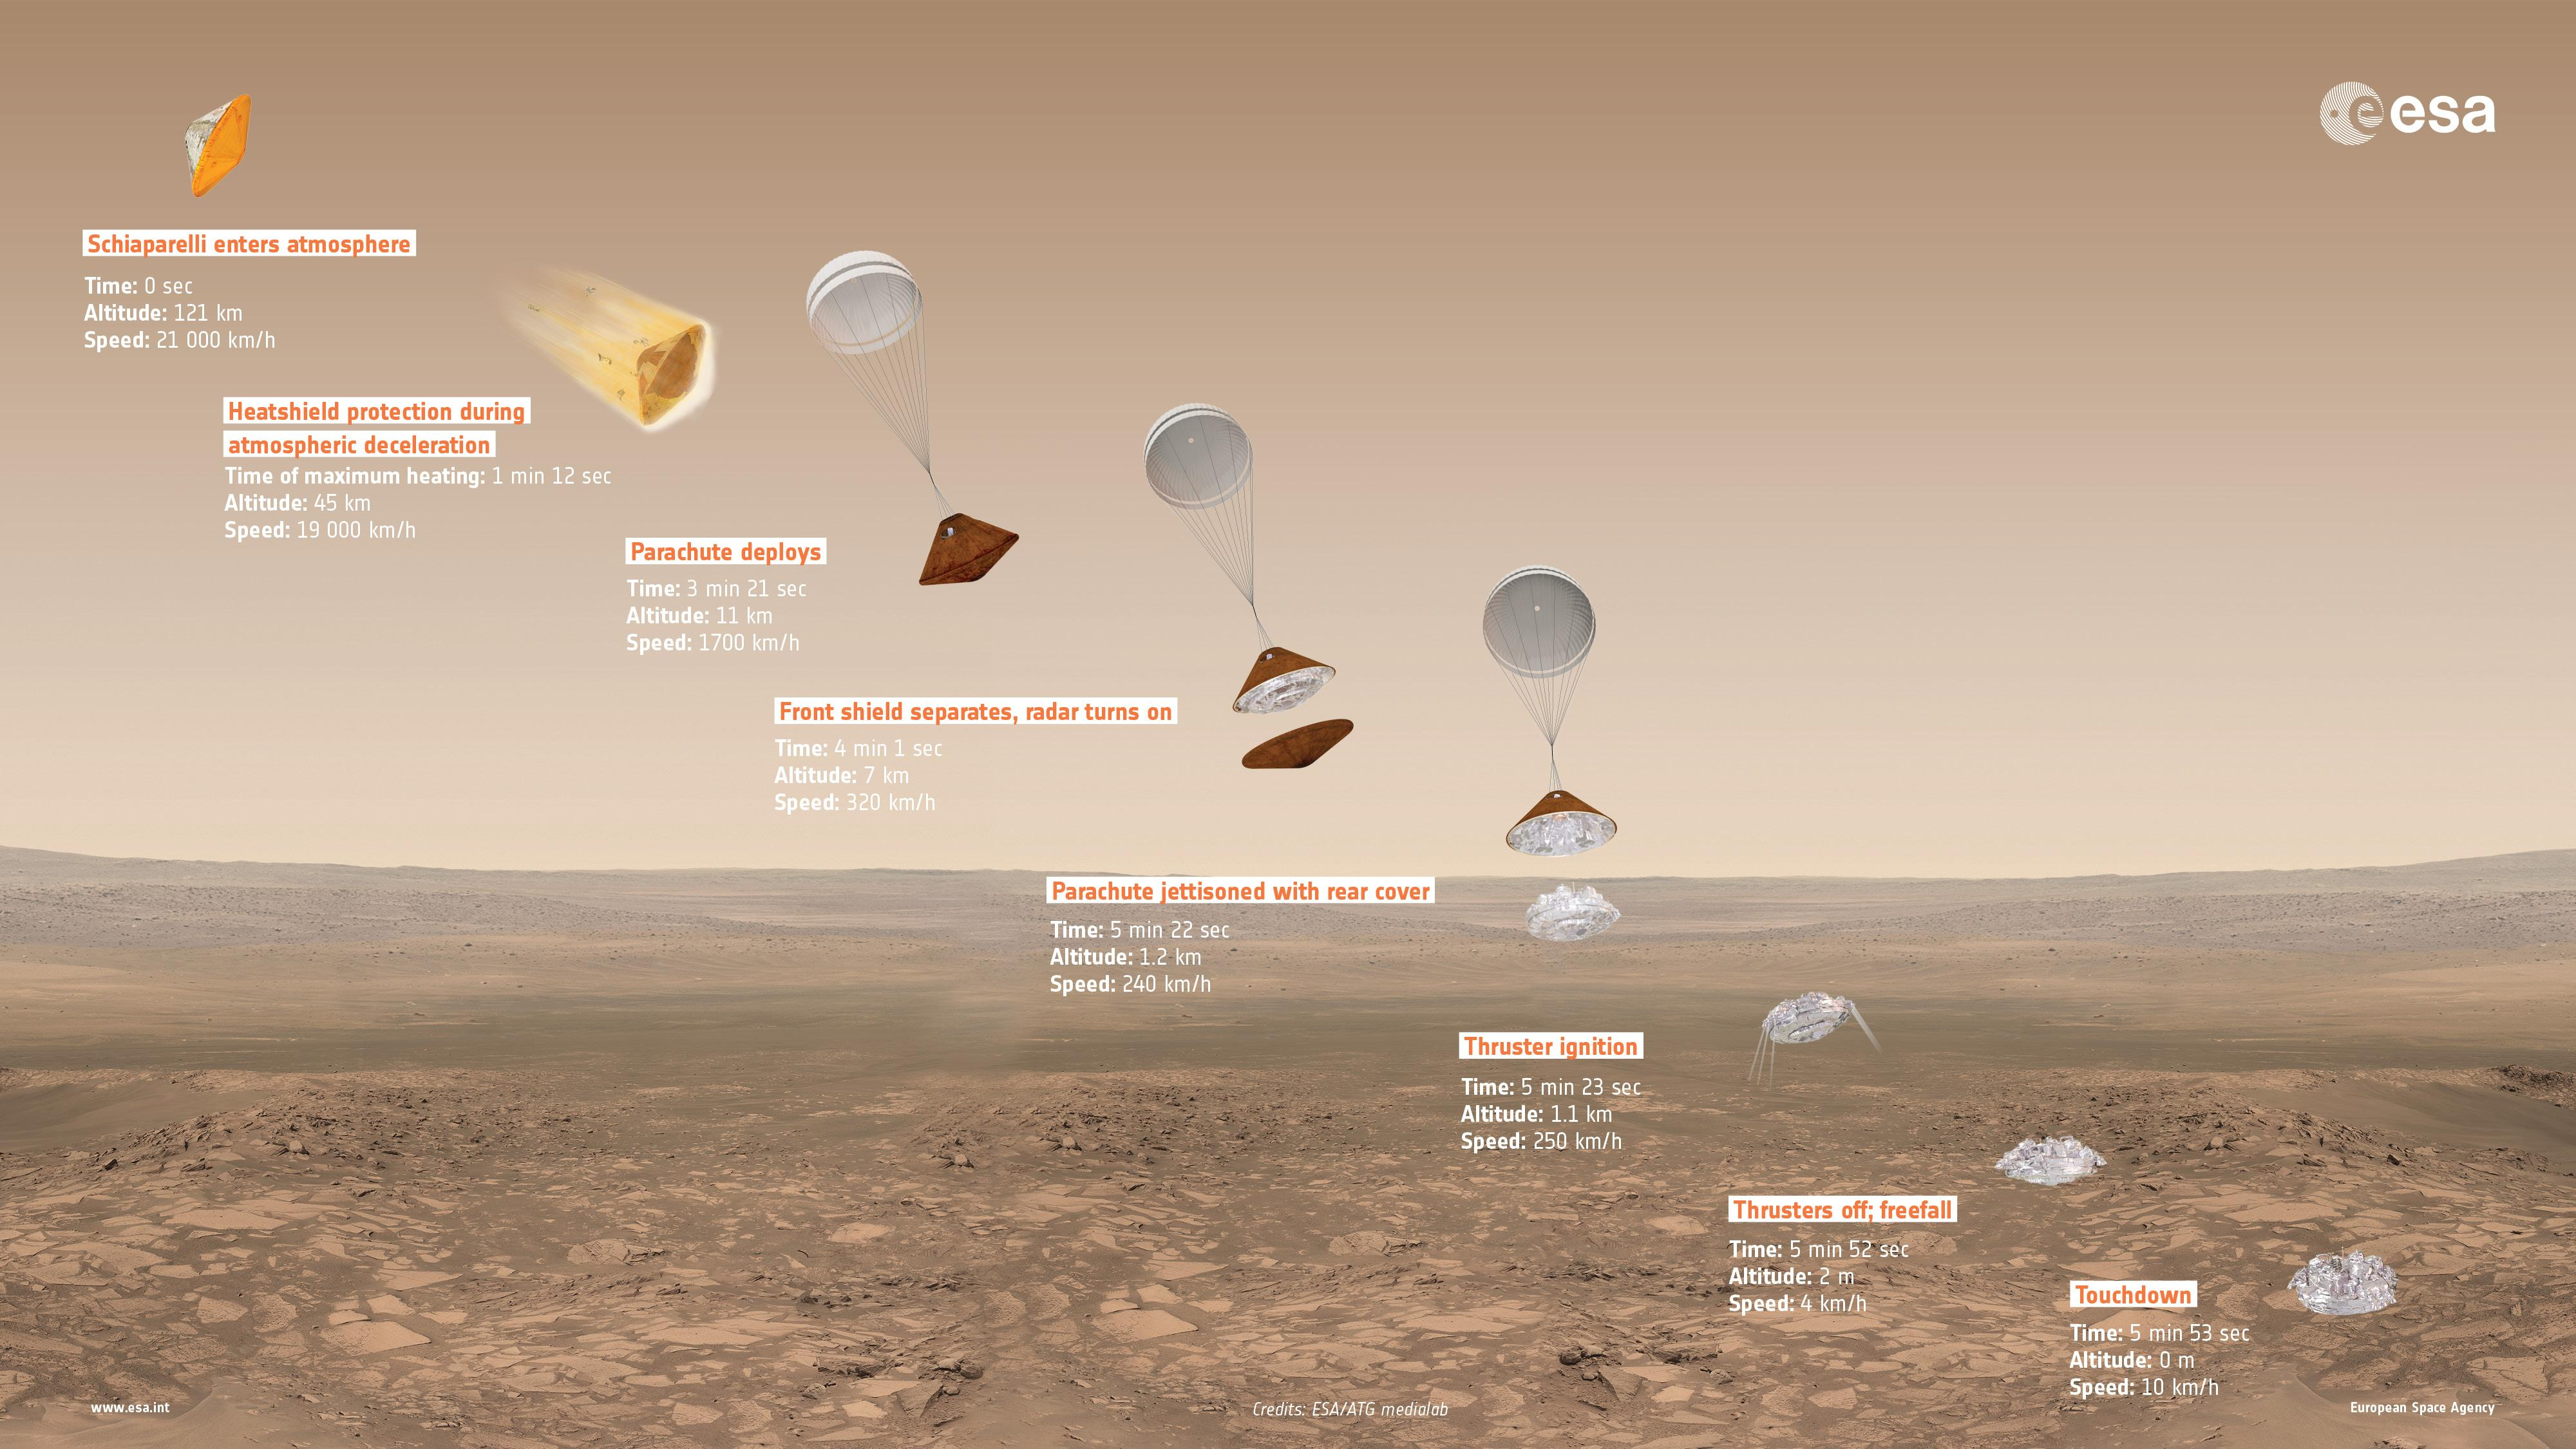 ExoMars DescentInfographic_16x9_20160223.jpg